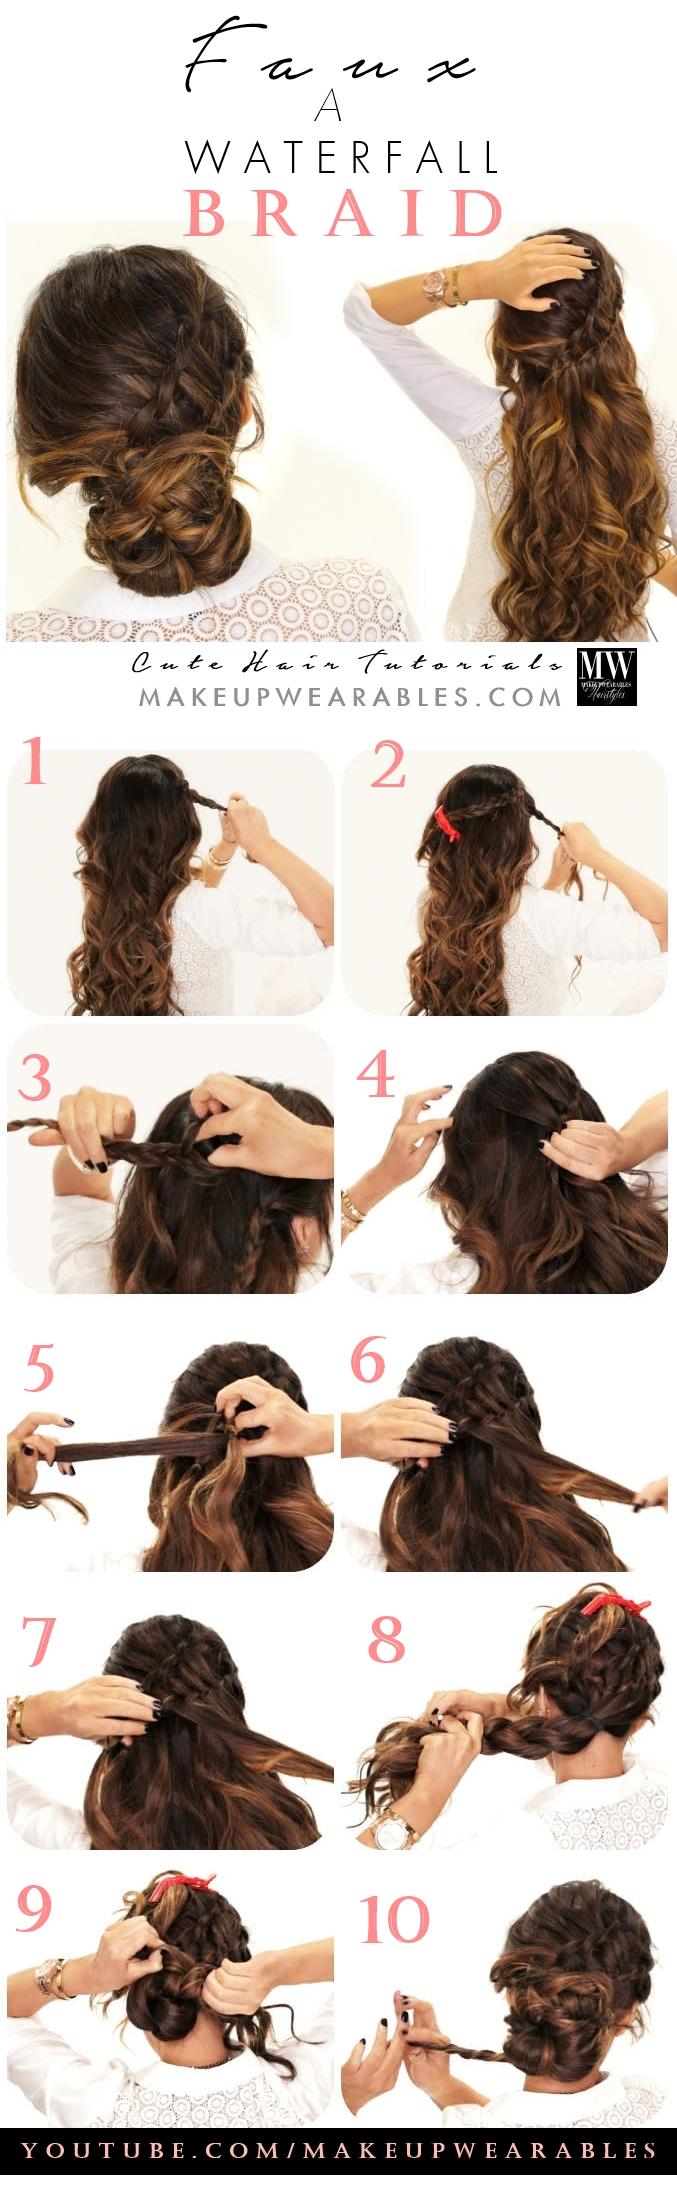 Easier way to do a Waterfall Braid tutorial Learn how to fake a